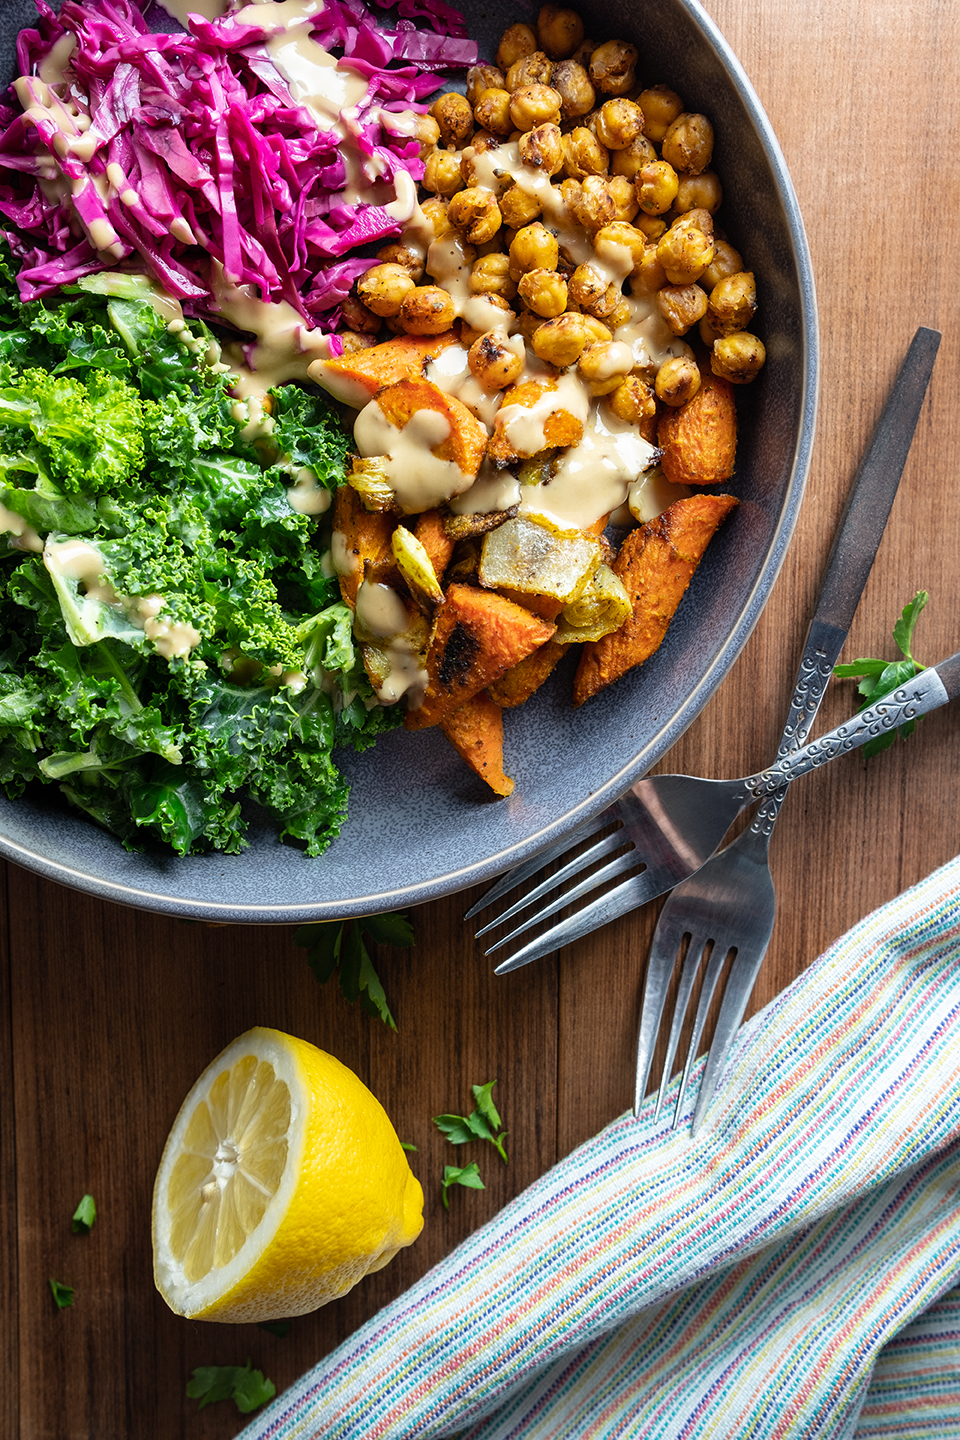 Spicy Healthy Vegetarian Buddha Bowl with a sunflower butter and lemon dressing